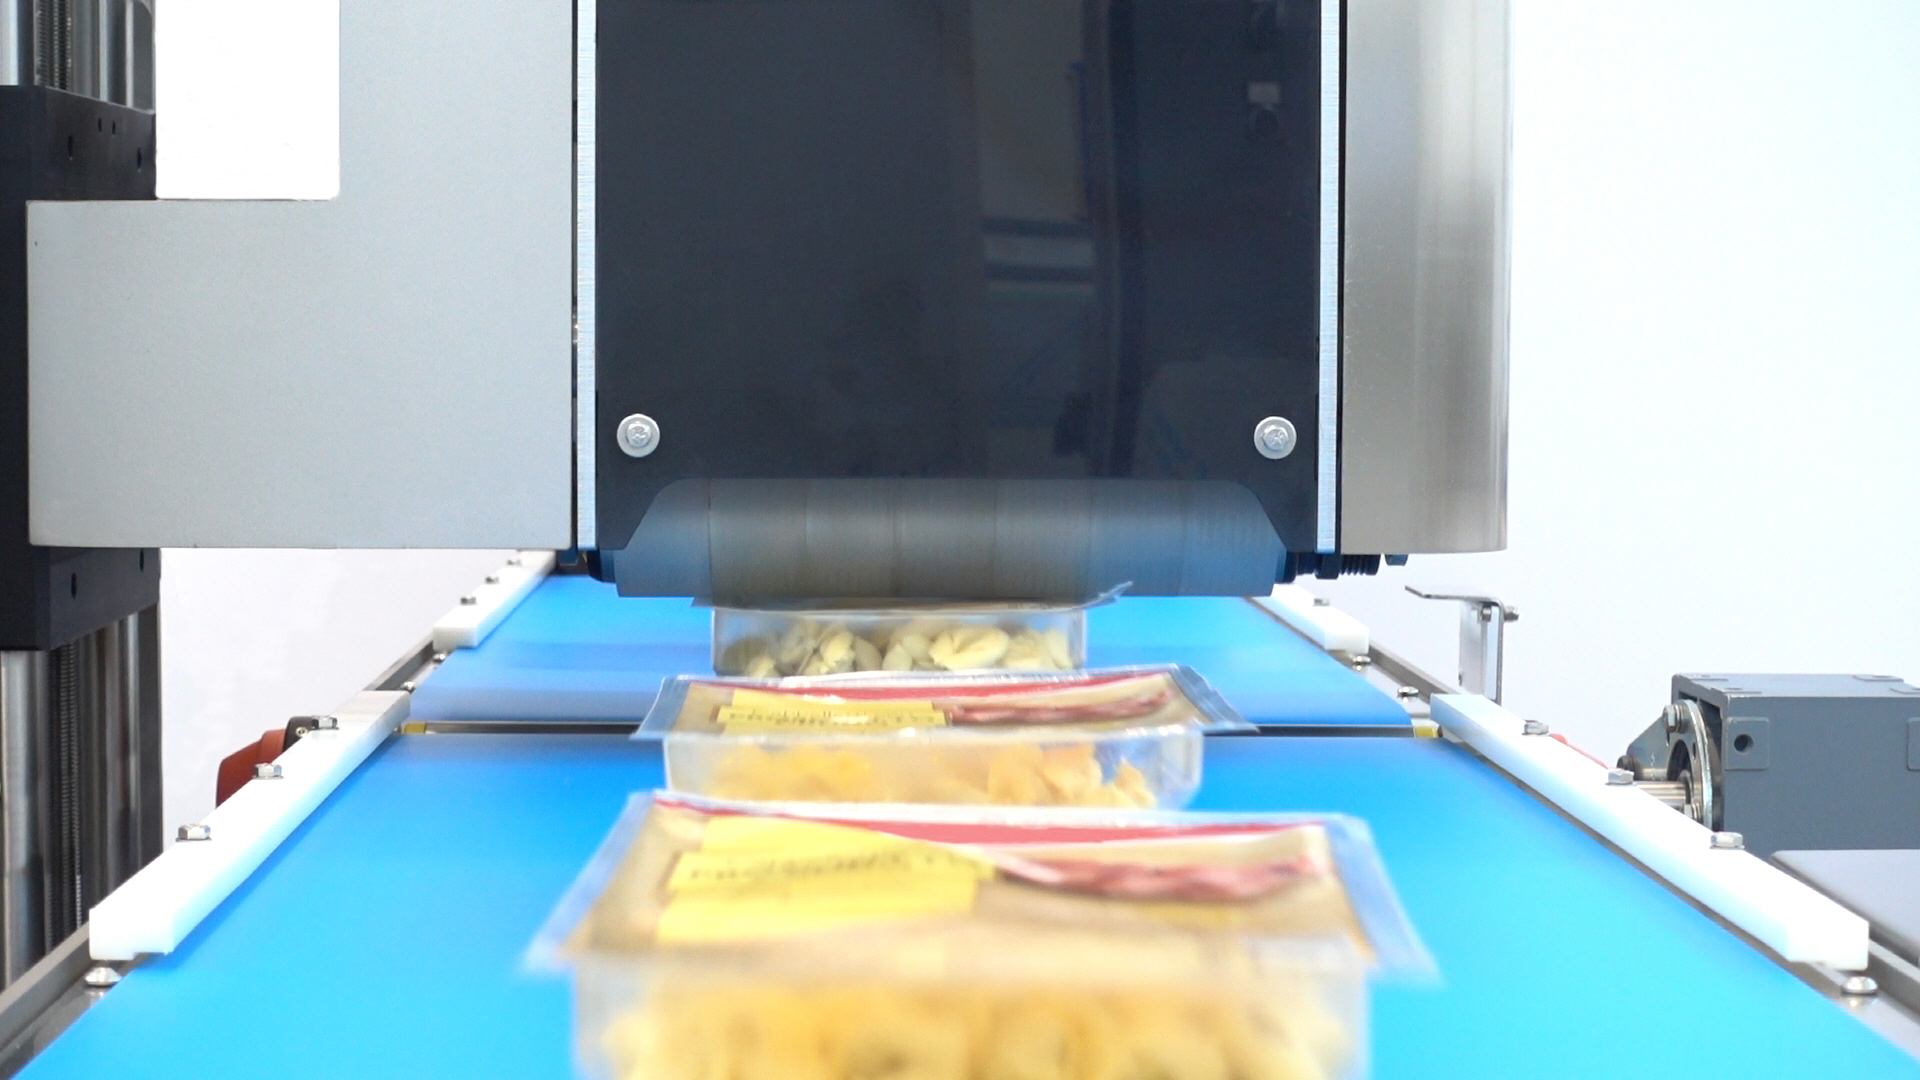 In-Line leak detection solutions for fresh pasta packed in MAP: new technologies for the food industry